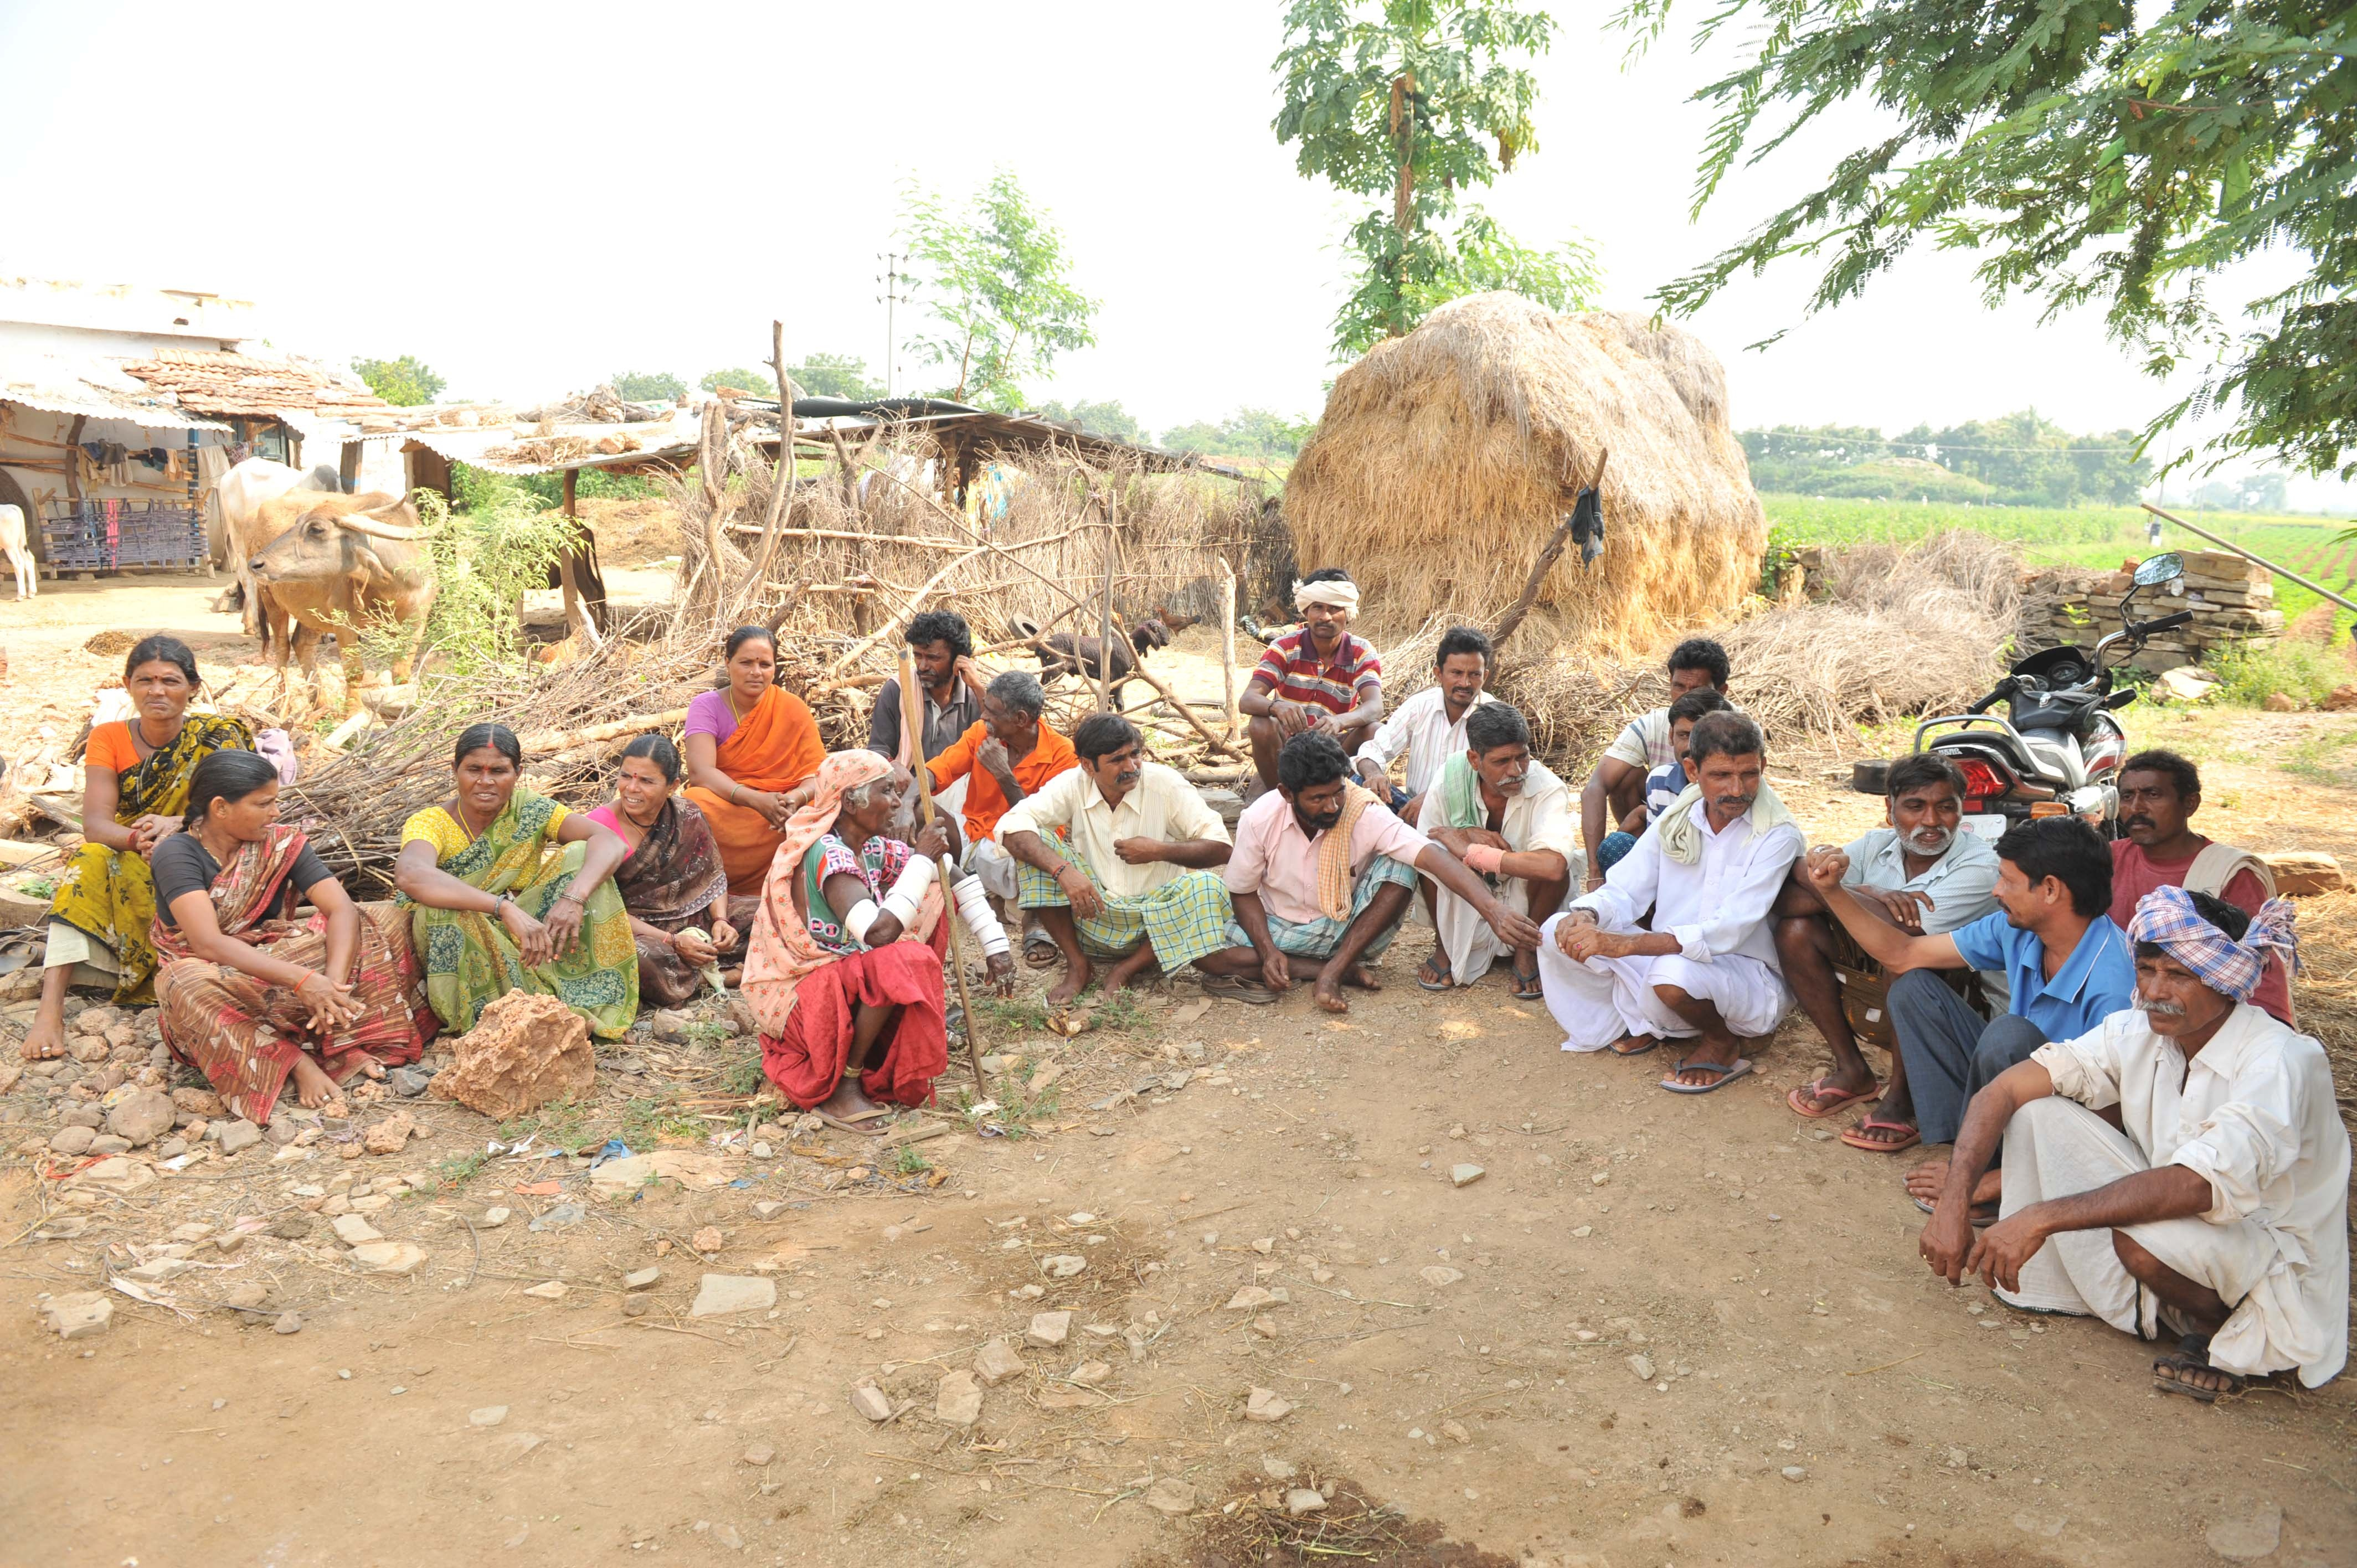 Social protection schemes can help the vulnerable in local networks. Here, villagers in India discuss how to monitor groundwater levels